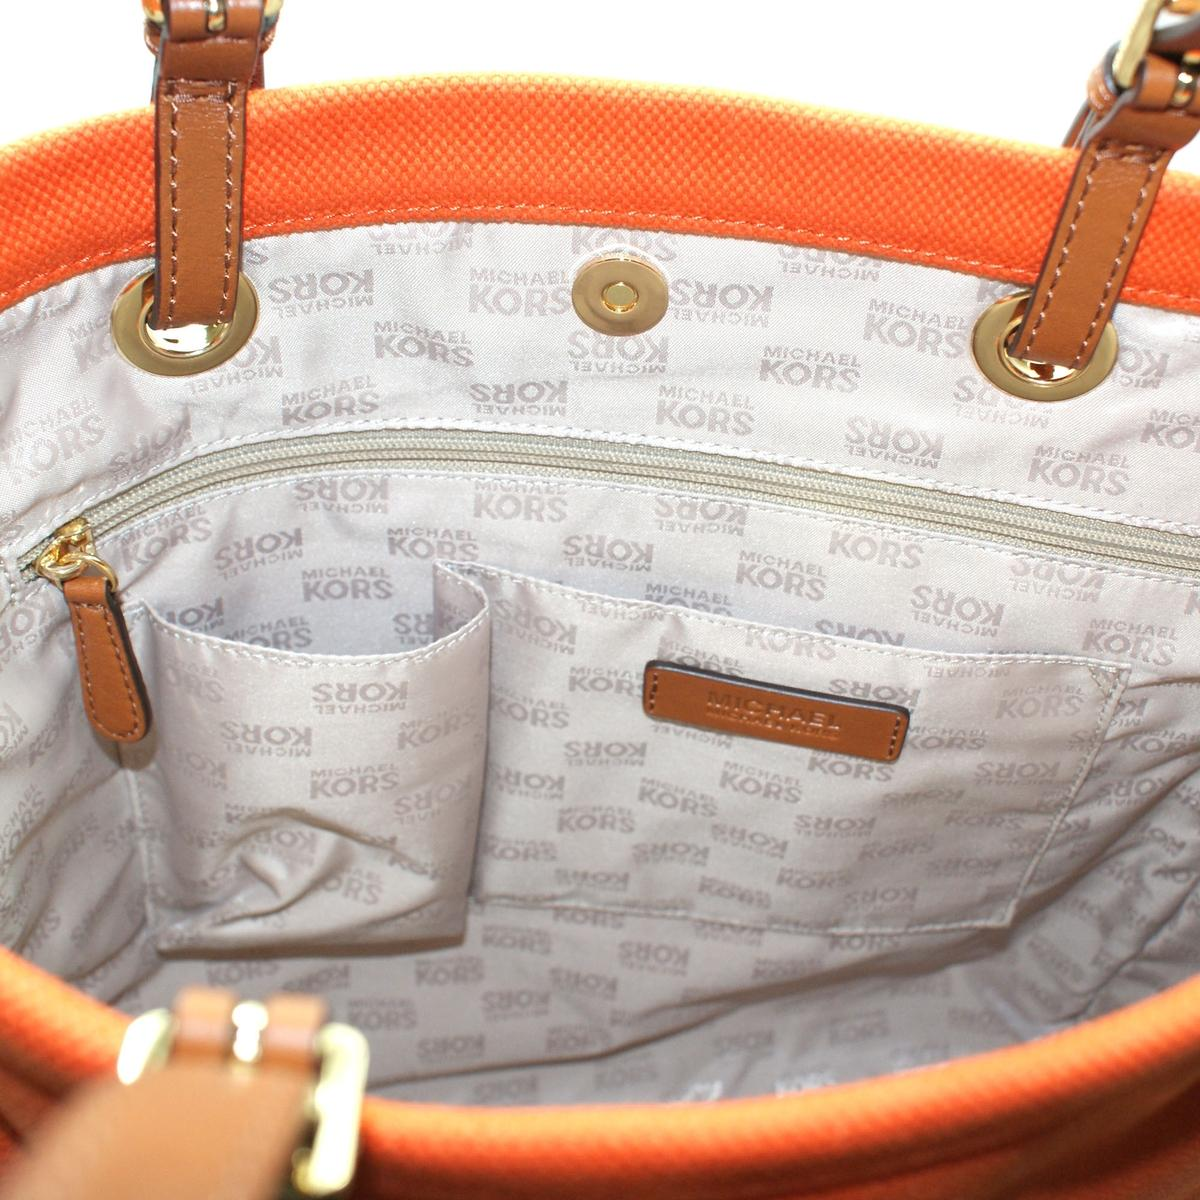 7b9cda23bfd181 ... discount code for home michael kors jet set tangerine canvas tote. click  thumbnail to zoom